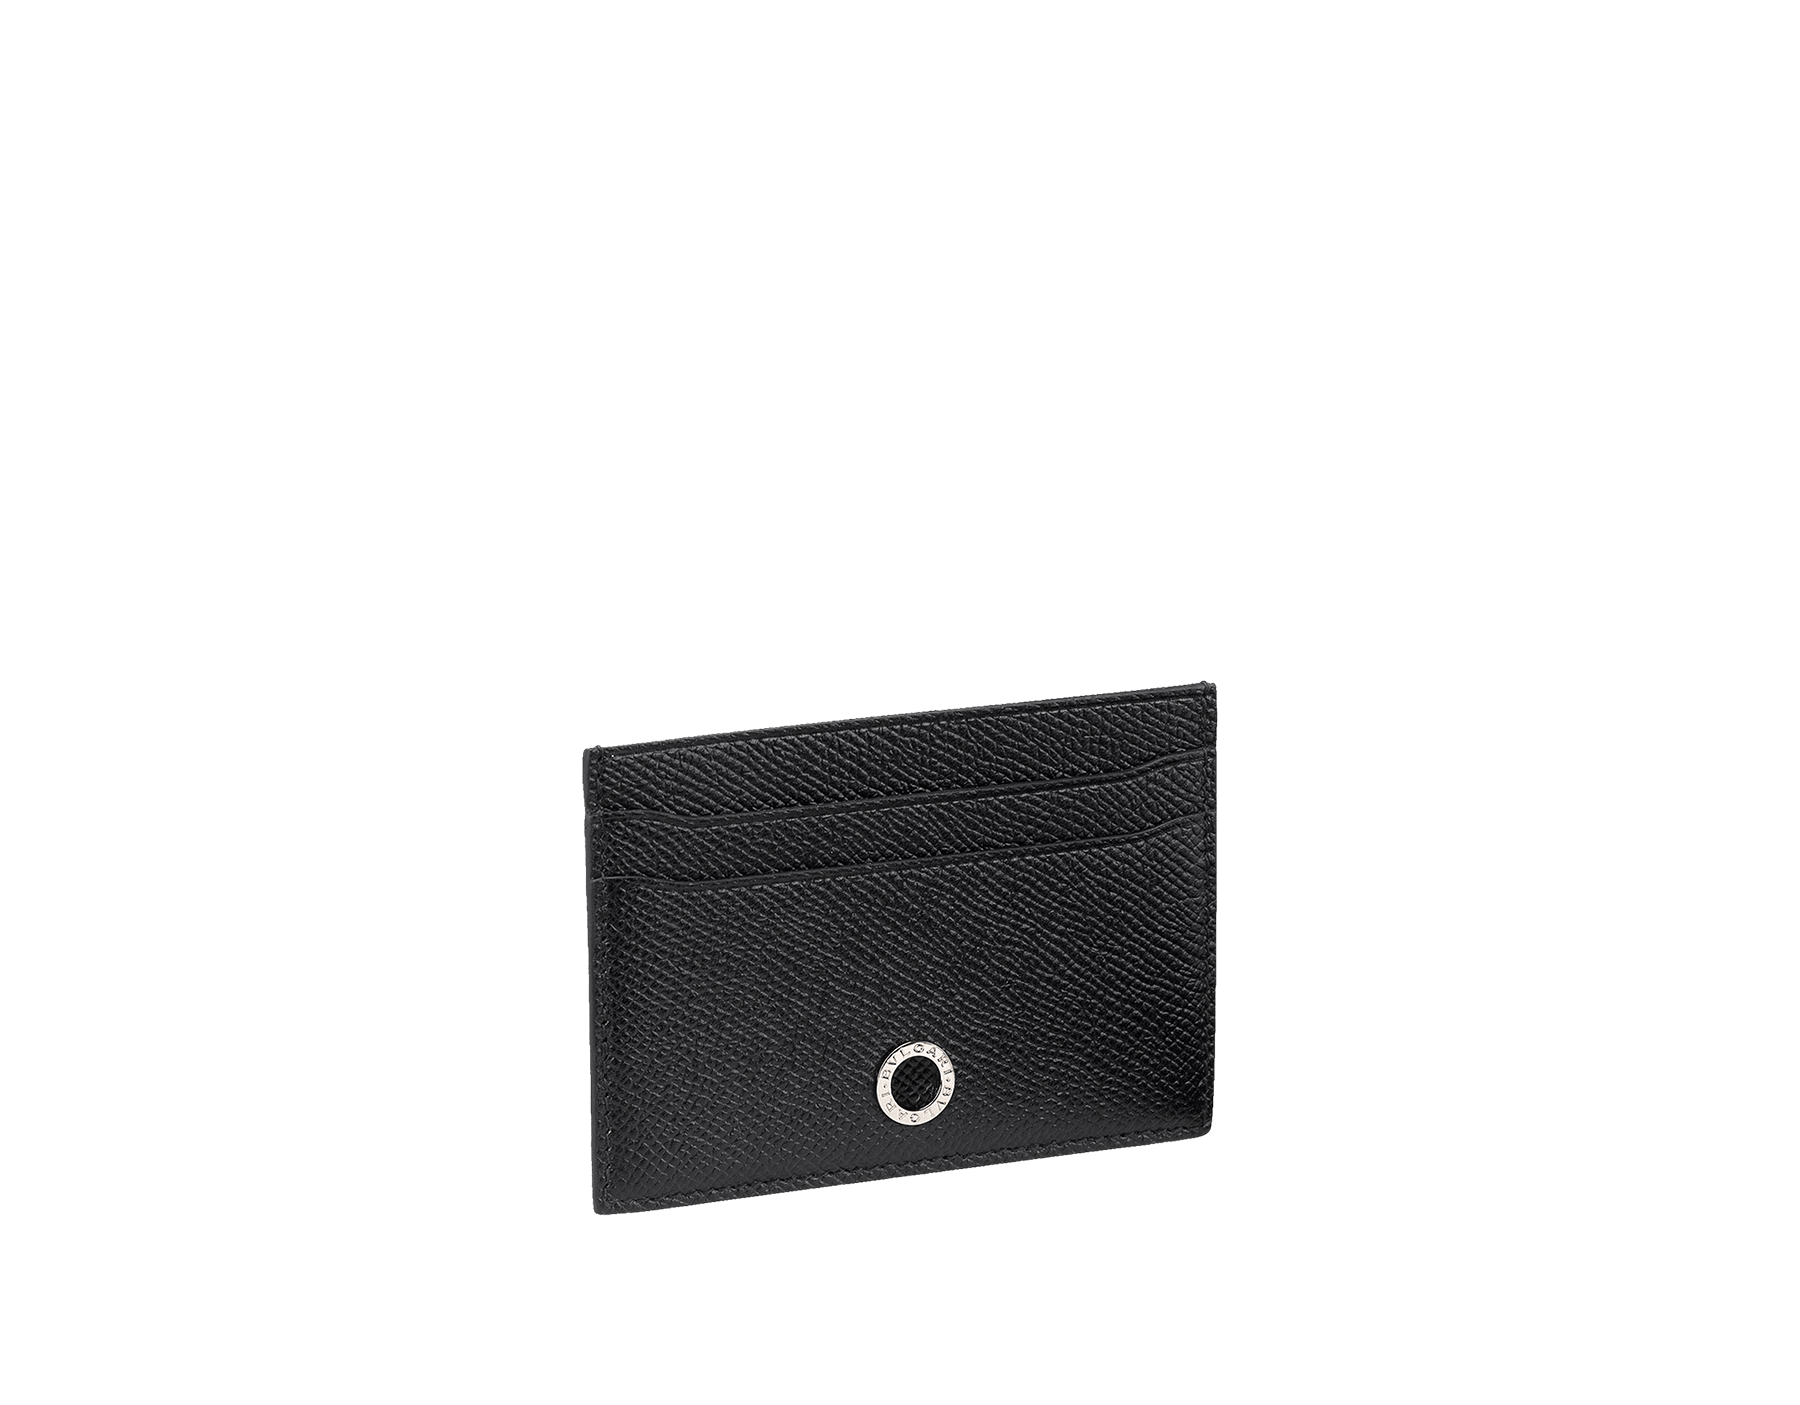 Black grain leather credit card holder with brass palladium plated BVLGARI∙BVLGARI motif. Four credit card slots and one middle pocket. Also available in other colours in-store. 10.5 x 7.5 cm. - 4.1 x 3.0 BBM-CC-HOLDER-gcl image 1